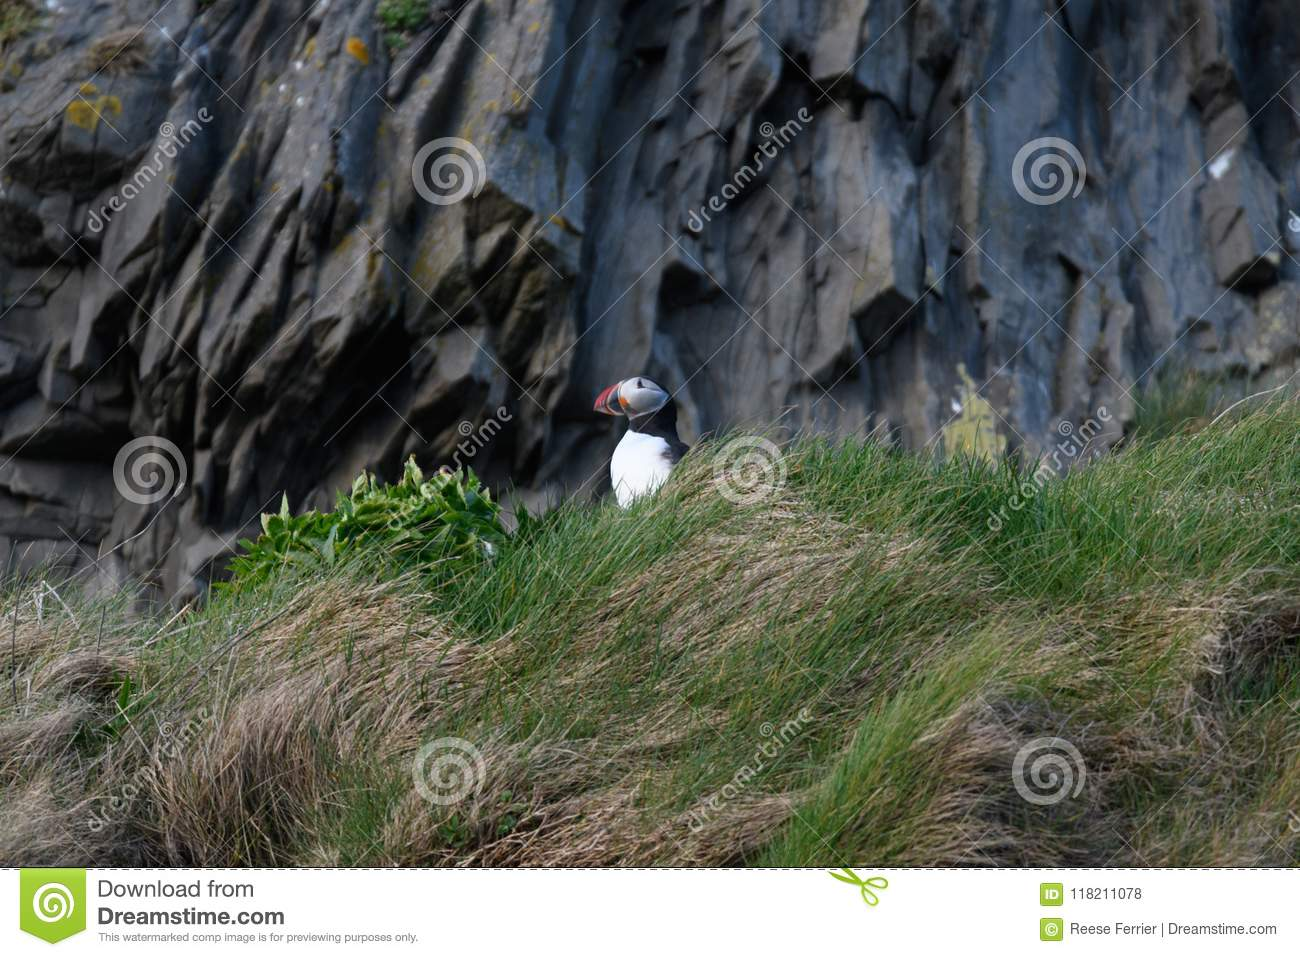 Fratercula arctica, Puffin of Iceland